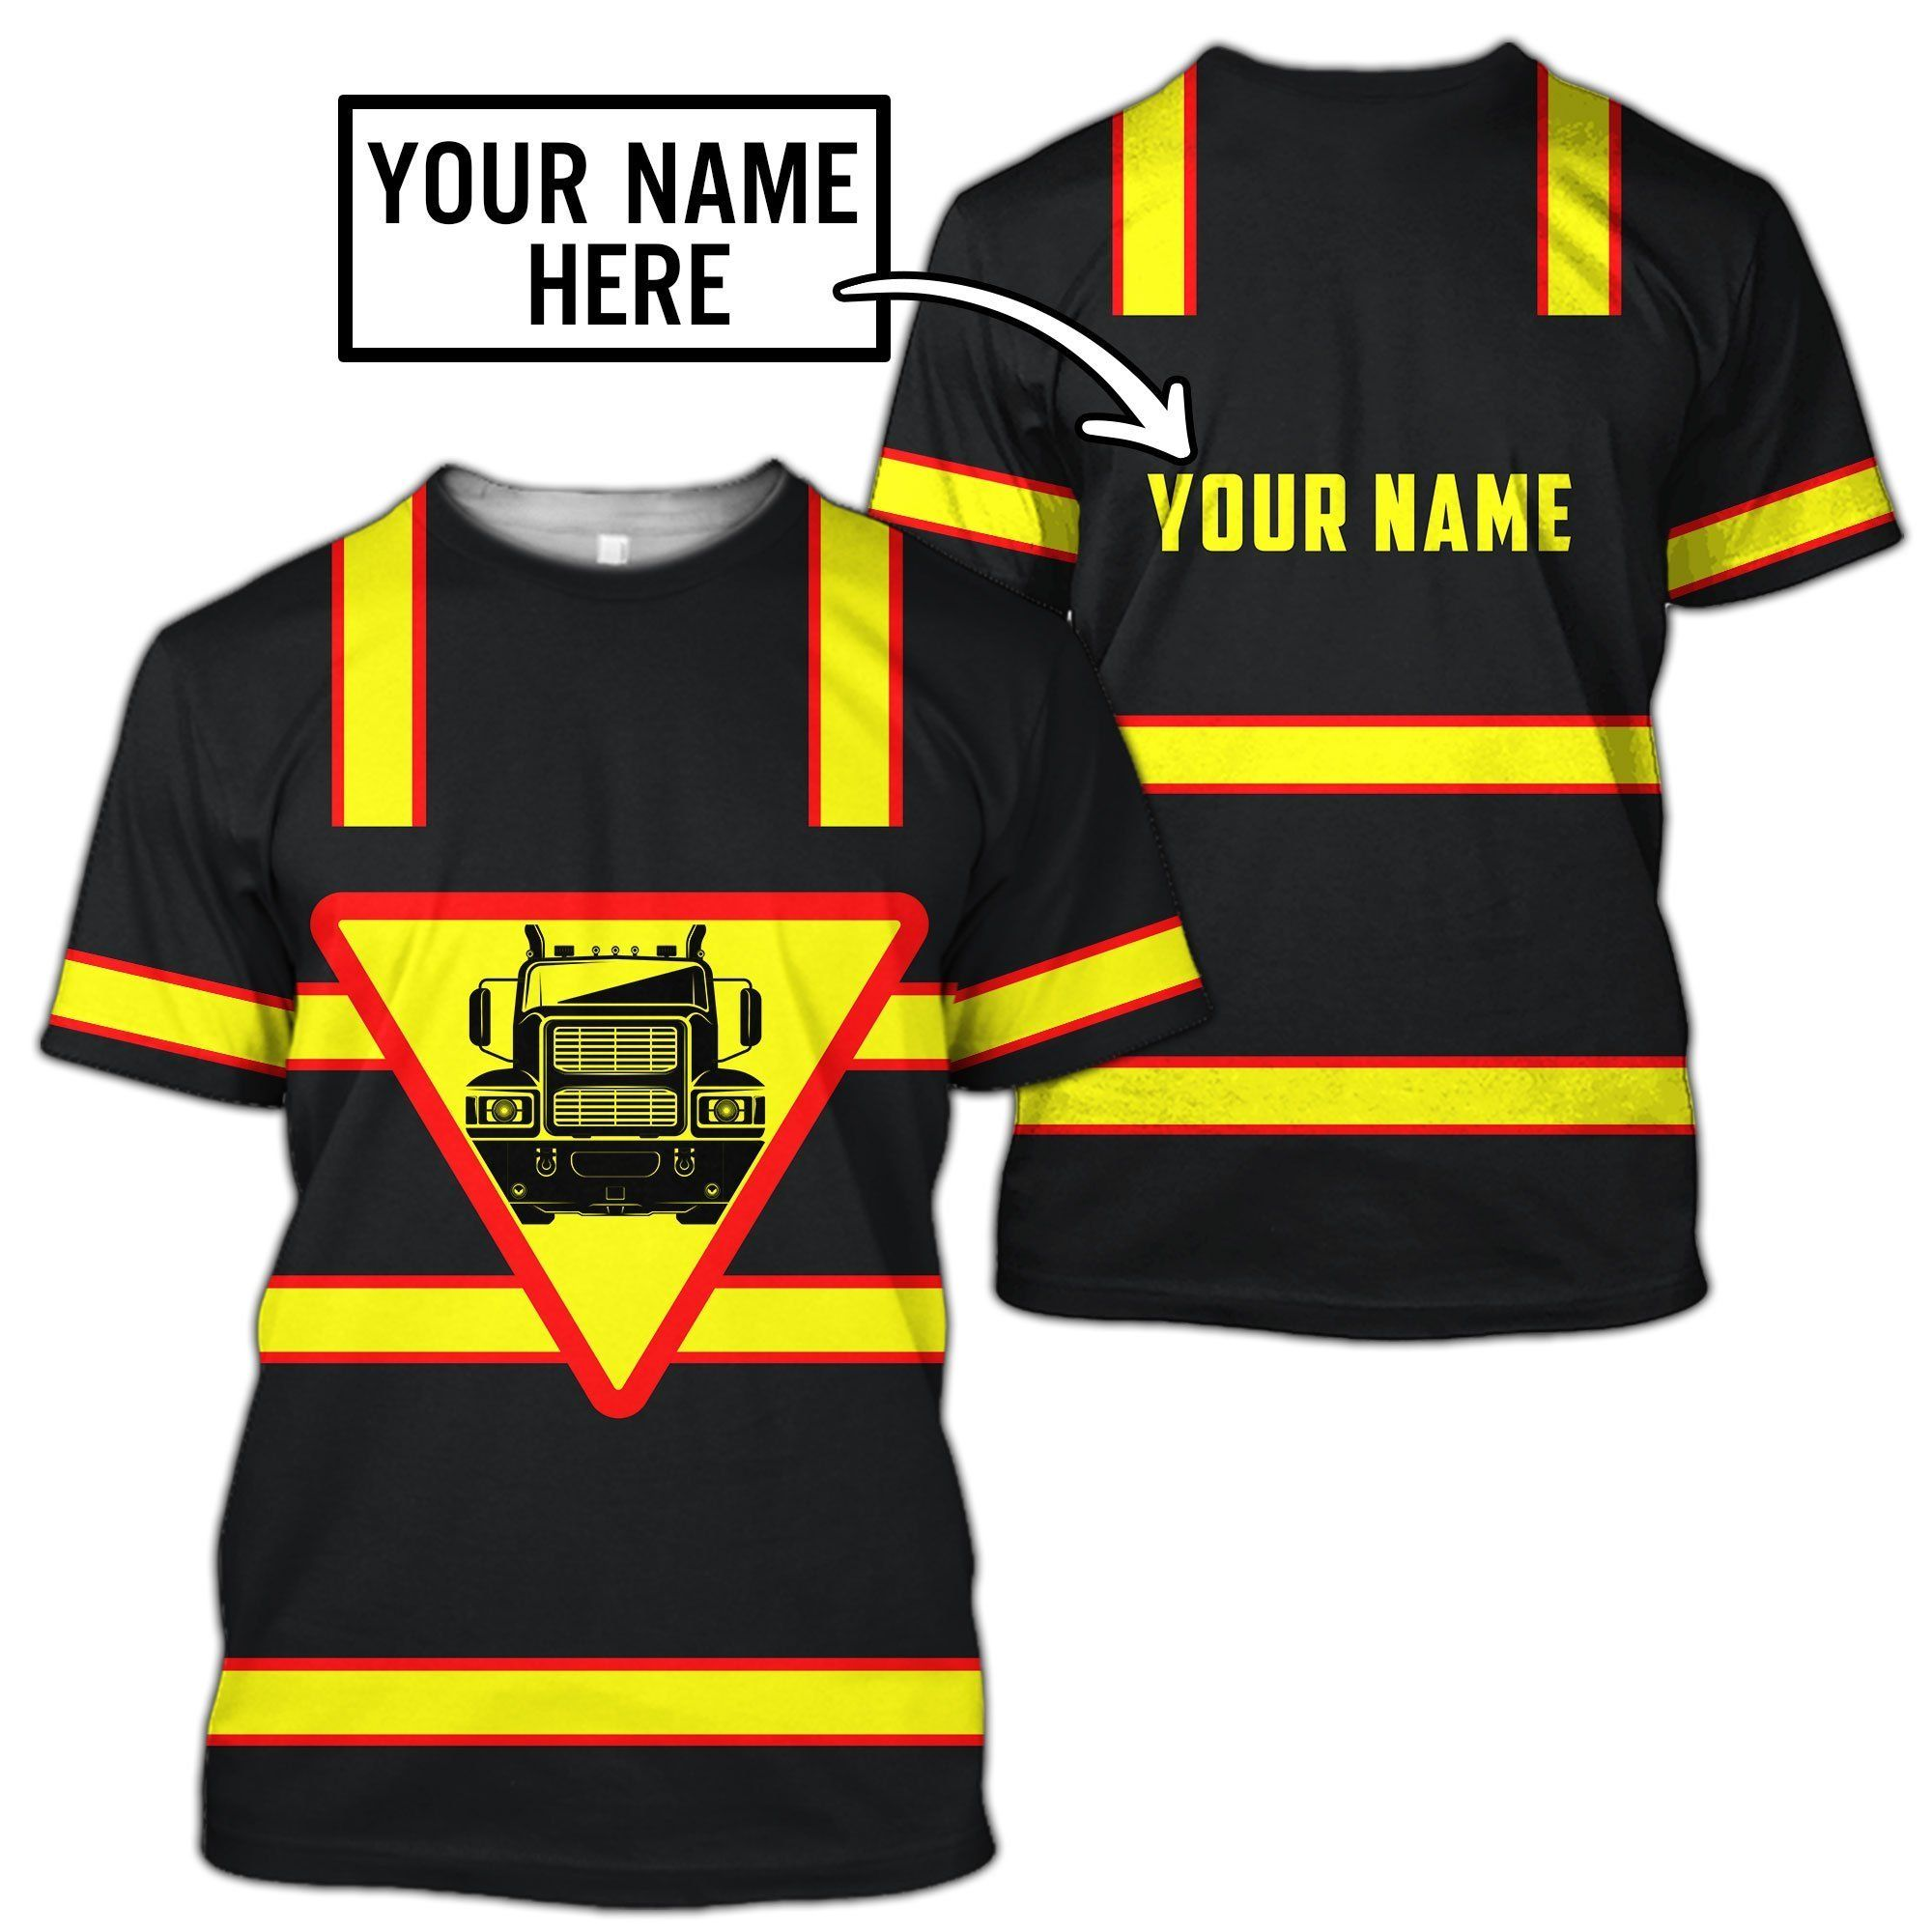 Premium Trucker Personalized Name 3D All Over Printed Unisex Shirts - T-Shirt / M